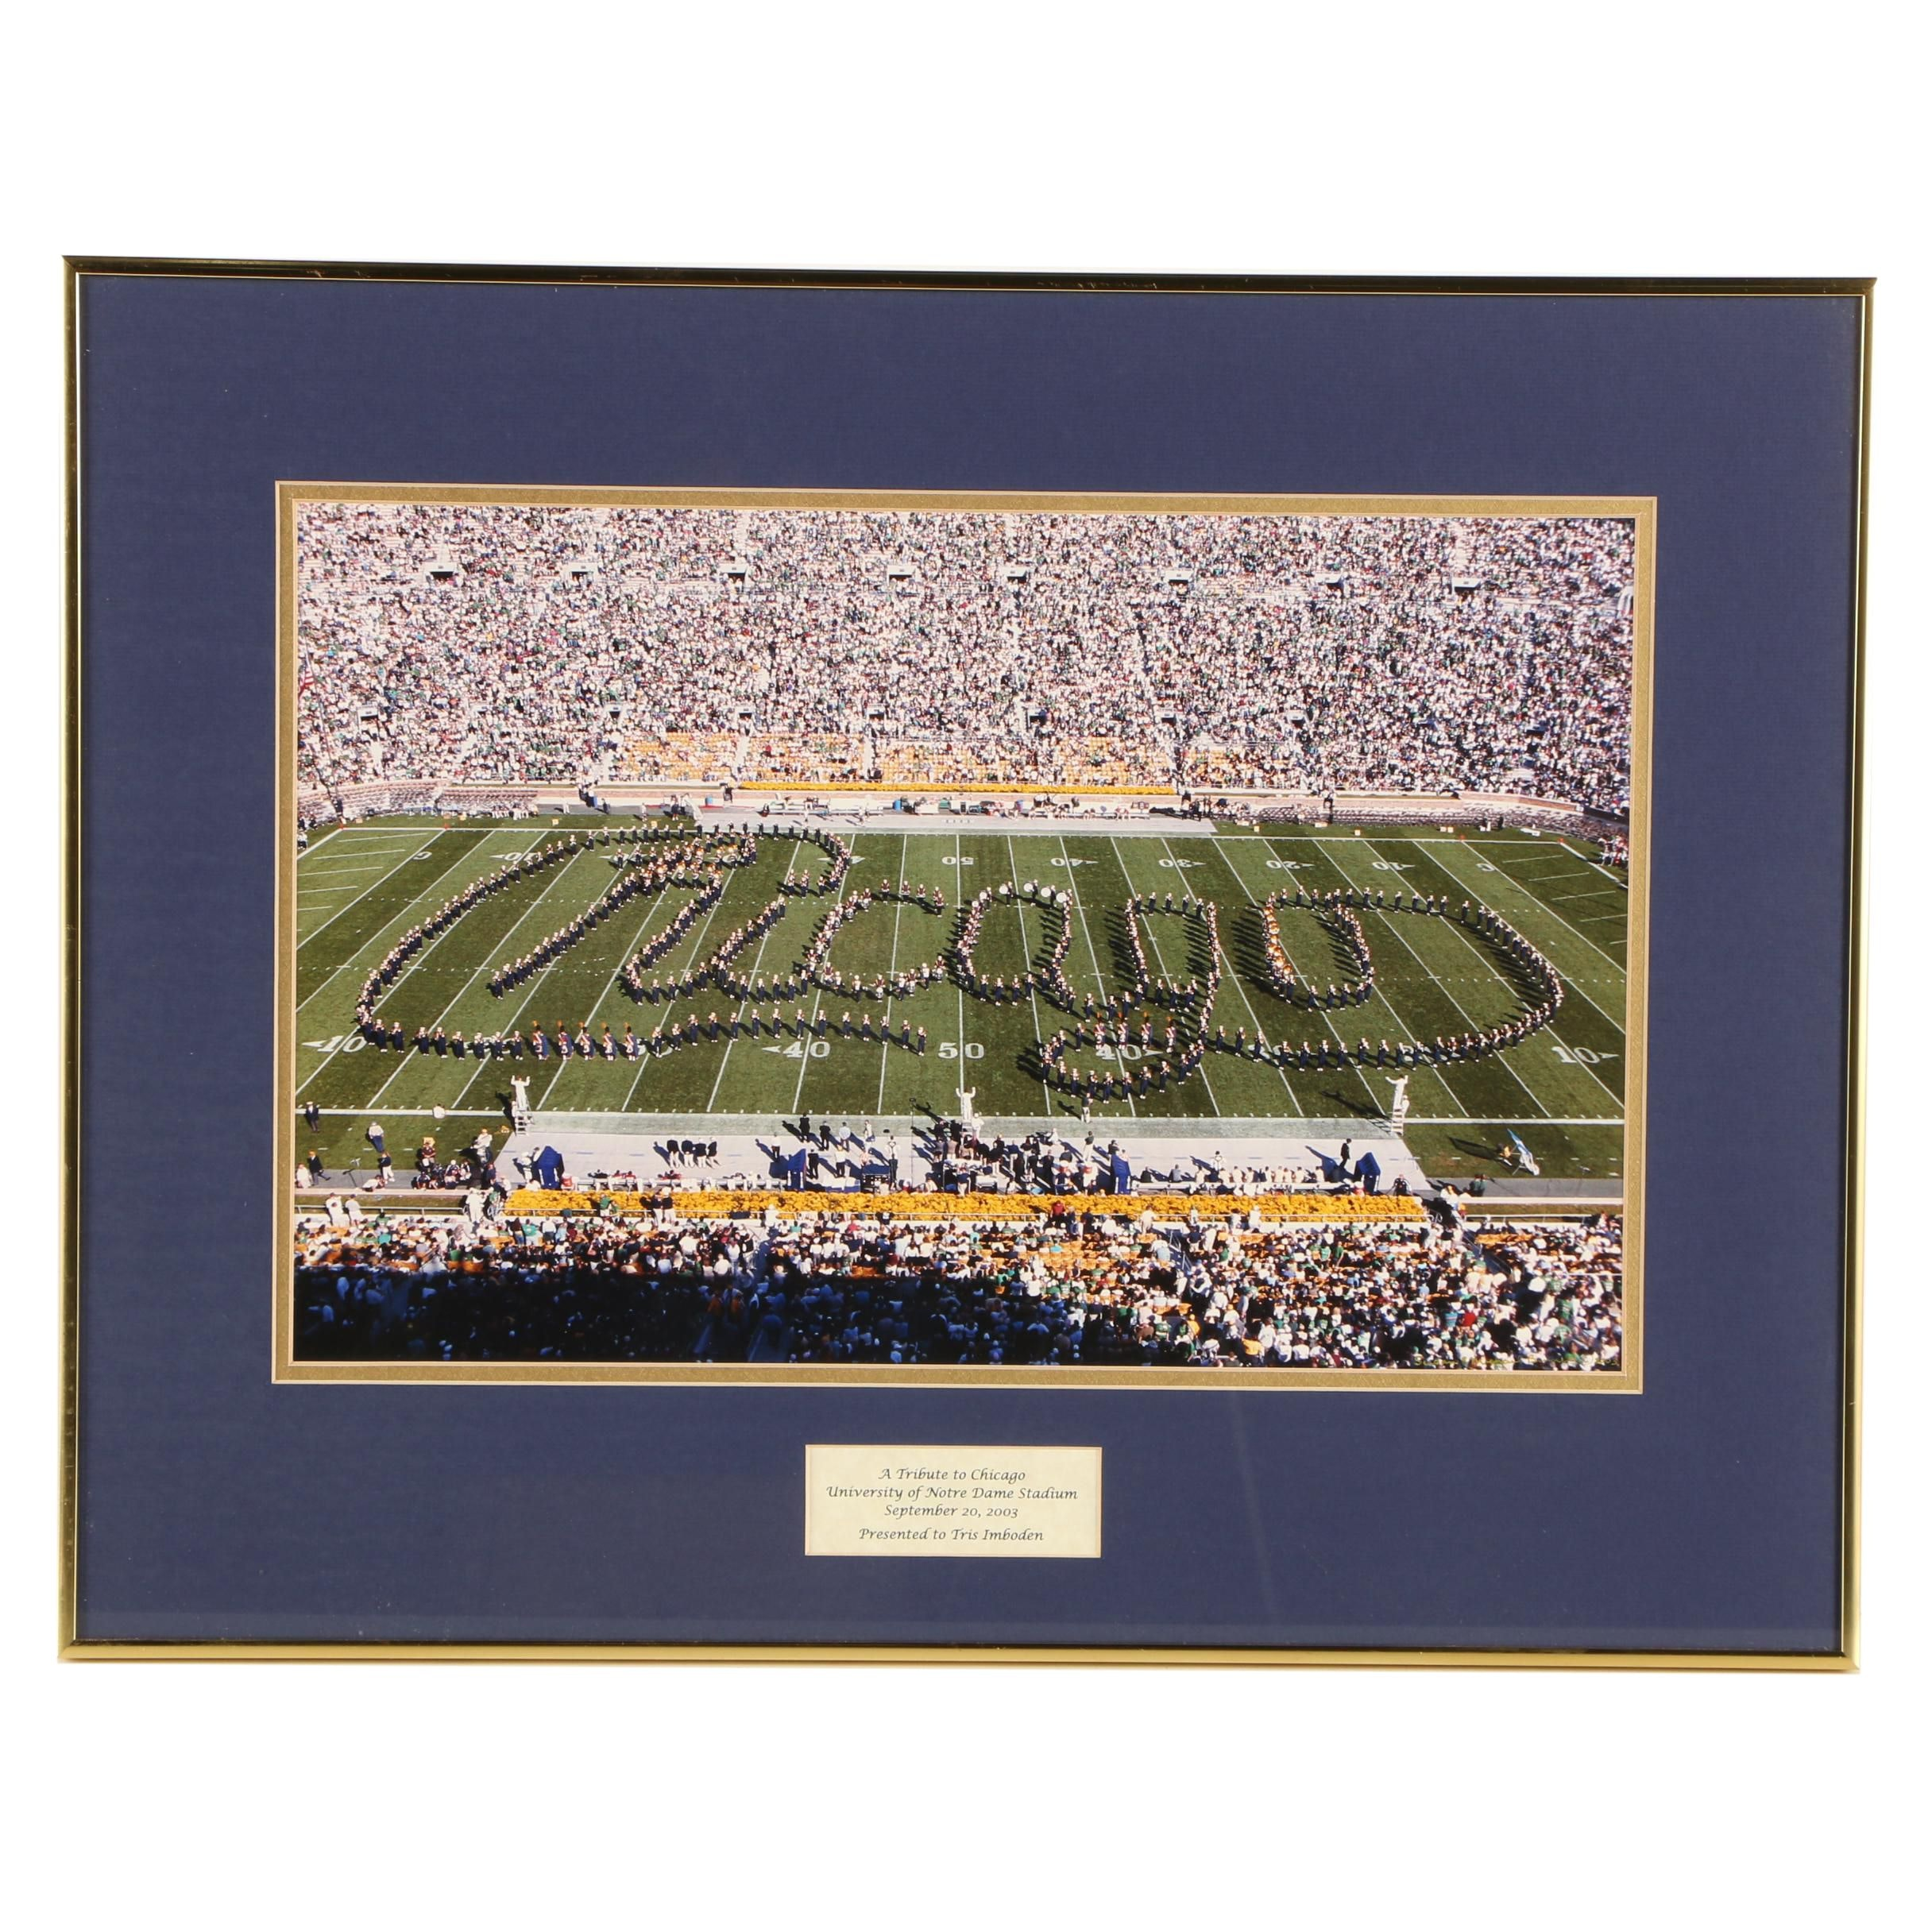 Giclee Print on Paper After Photograph of Notre Dame Band